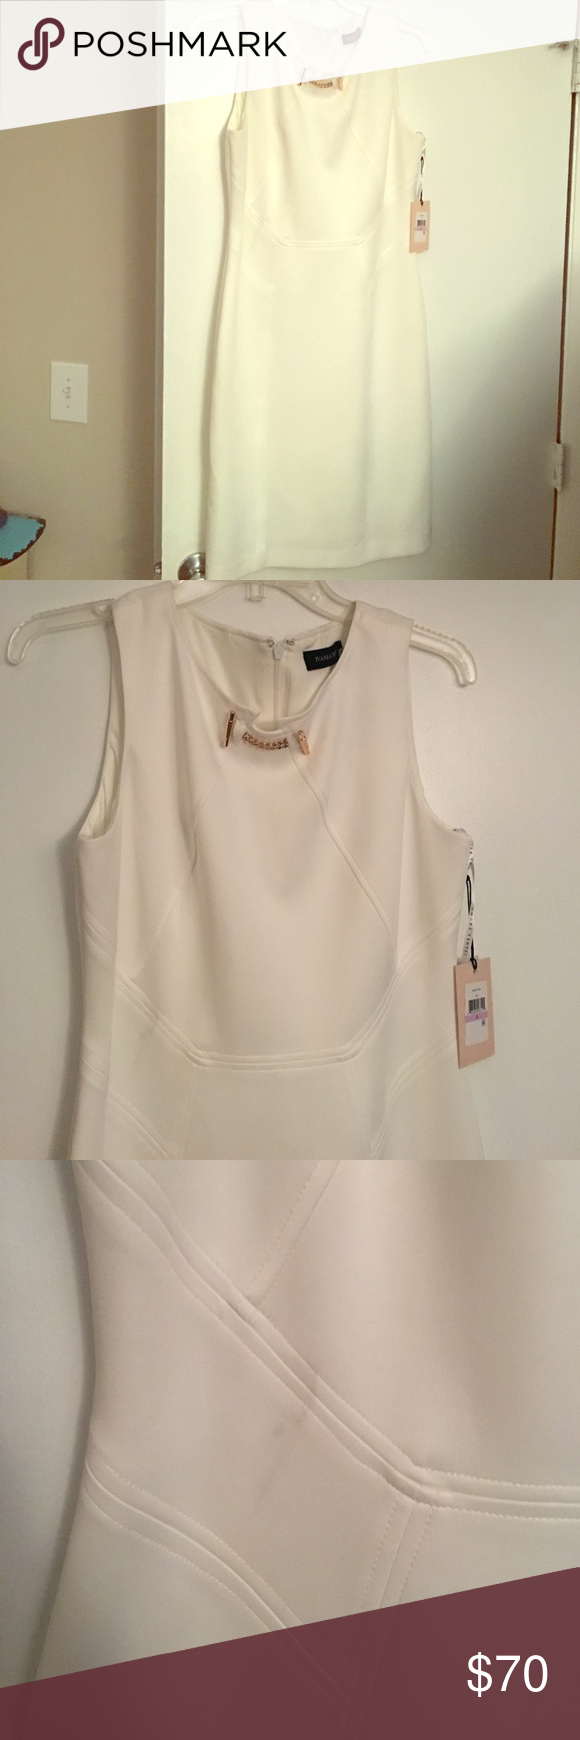 White ivanka trump dres Size 6, has smudge as shown in pic that looks like it would be easy to get out. I'm typically a size 4/6 and its big on me. Would recommend for an 8. New with tags! Reasonable offers only! Ivanka Trump Dresses